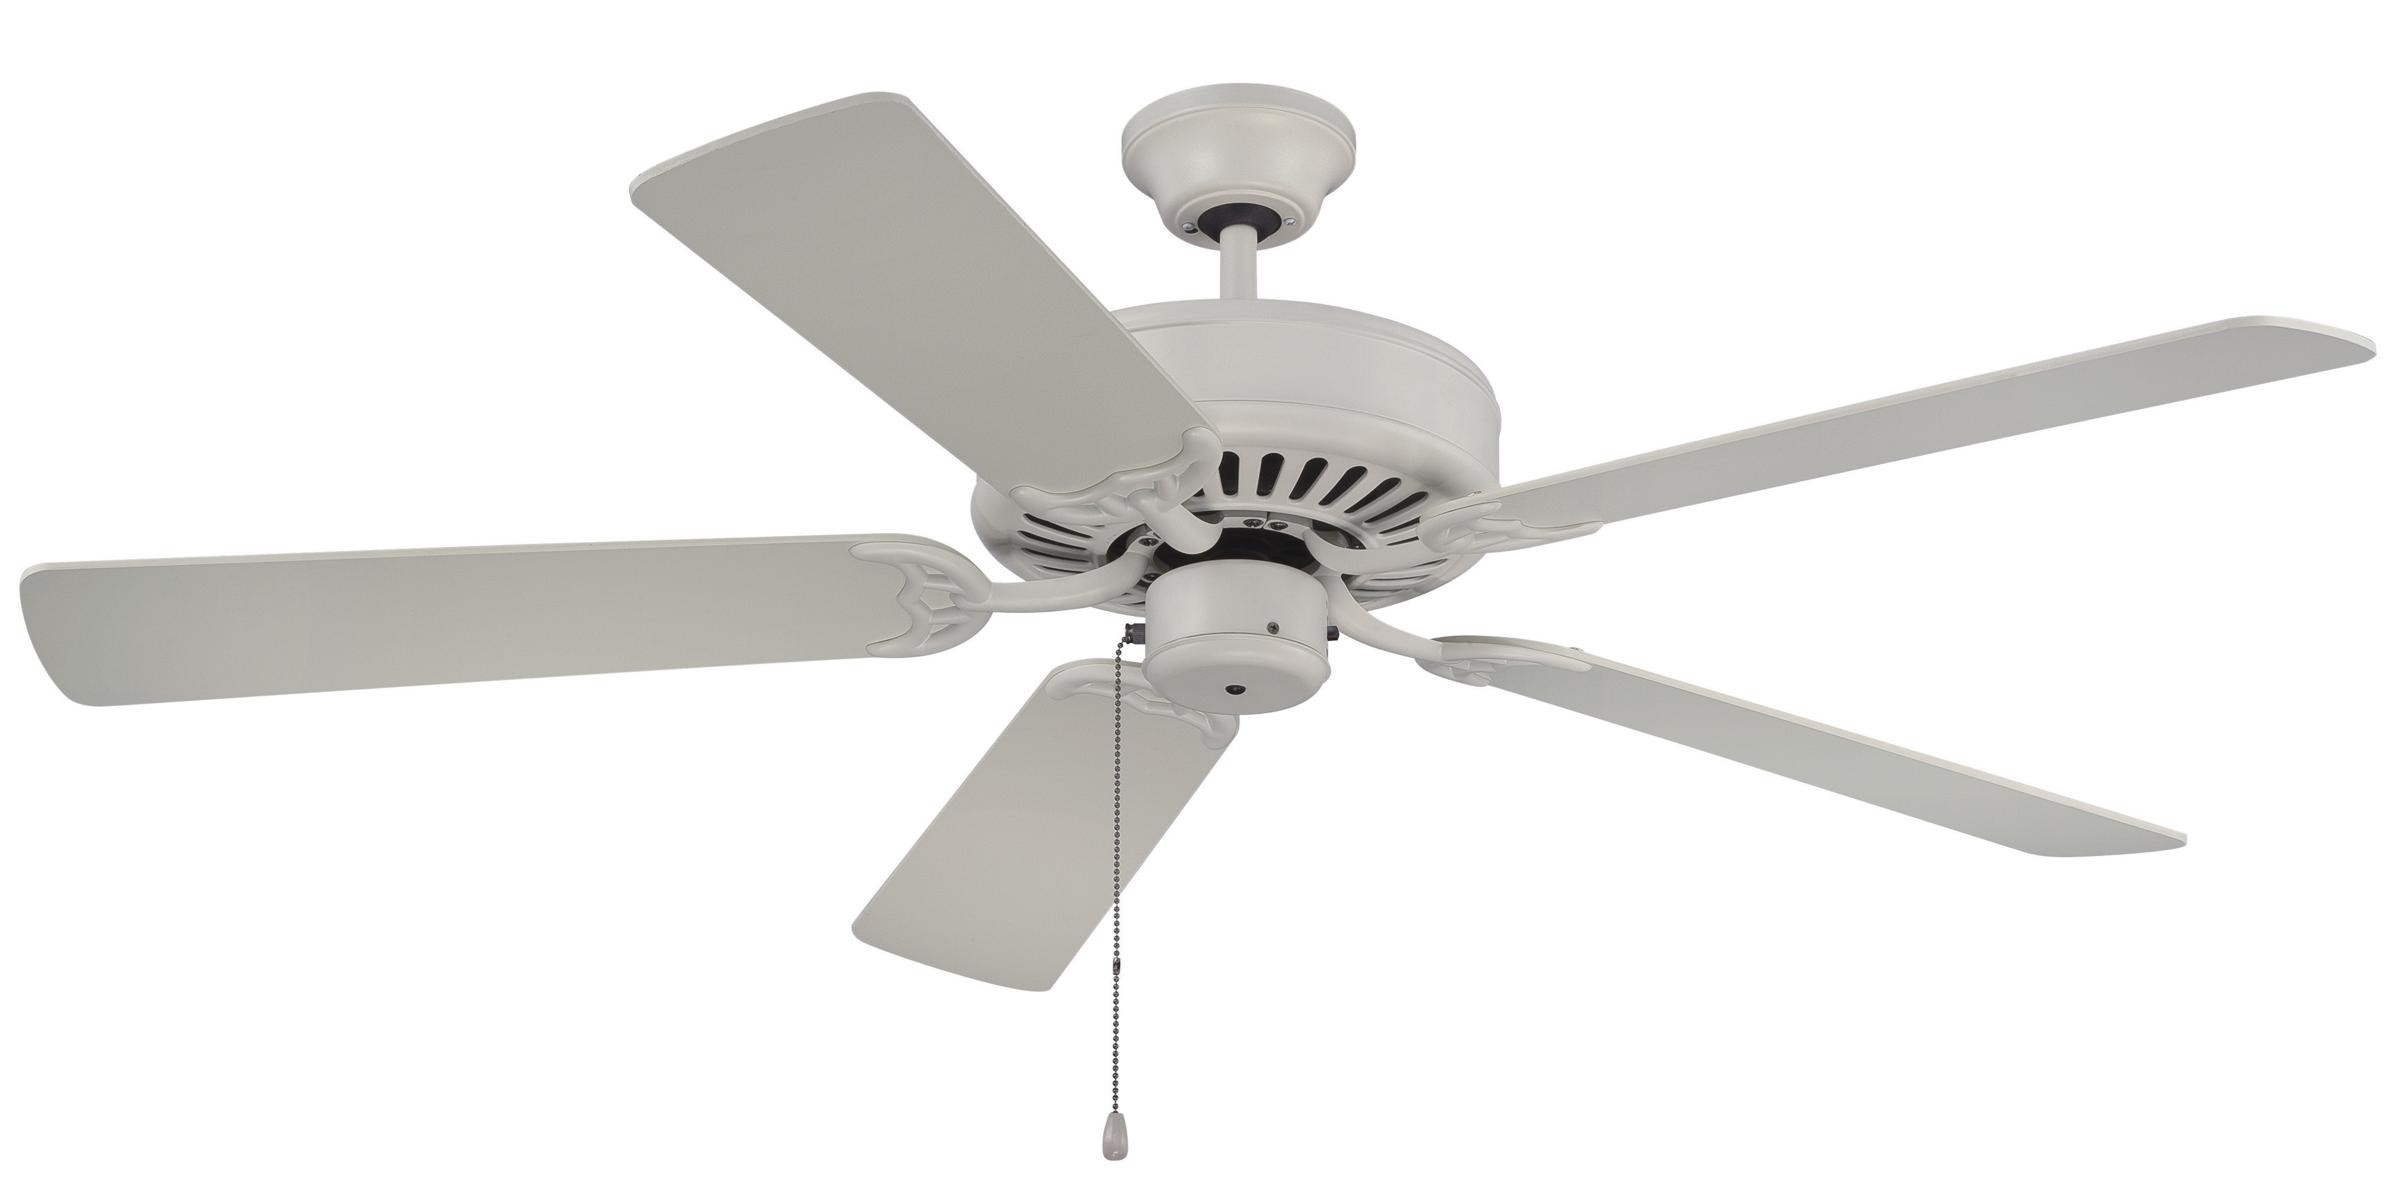 Craftmade Pro Builder Ceiling Fan Model C52Aw In Antique White With Regard To Most Popular Craftmade Outdoor Ceiling Fans Craftmade (Gallery 7 of 20)